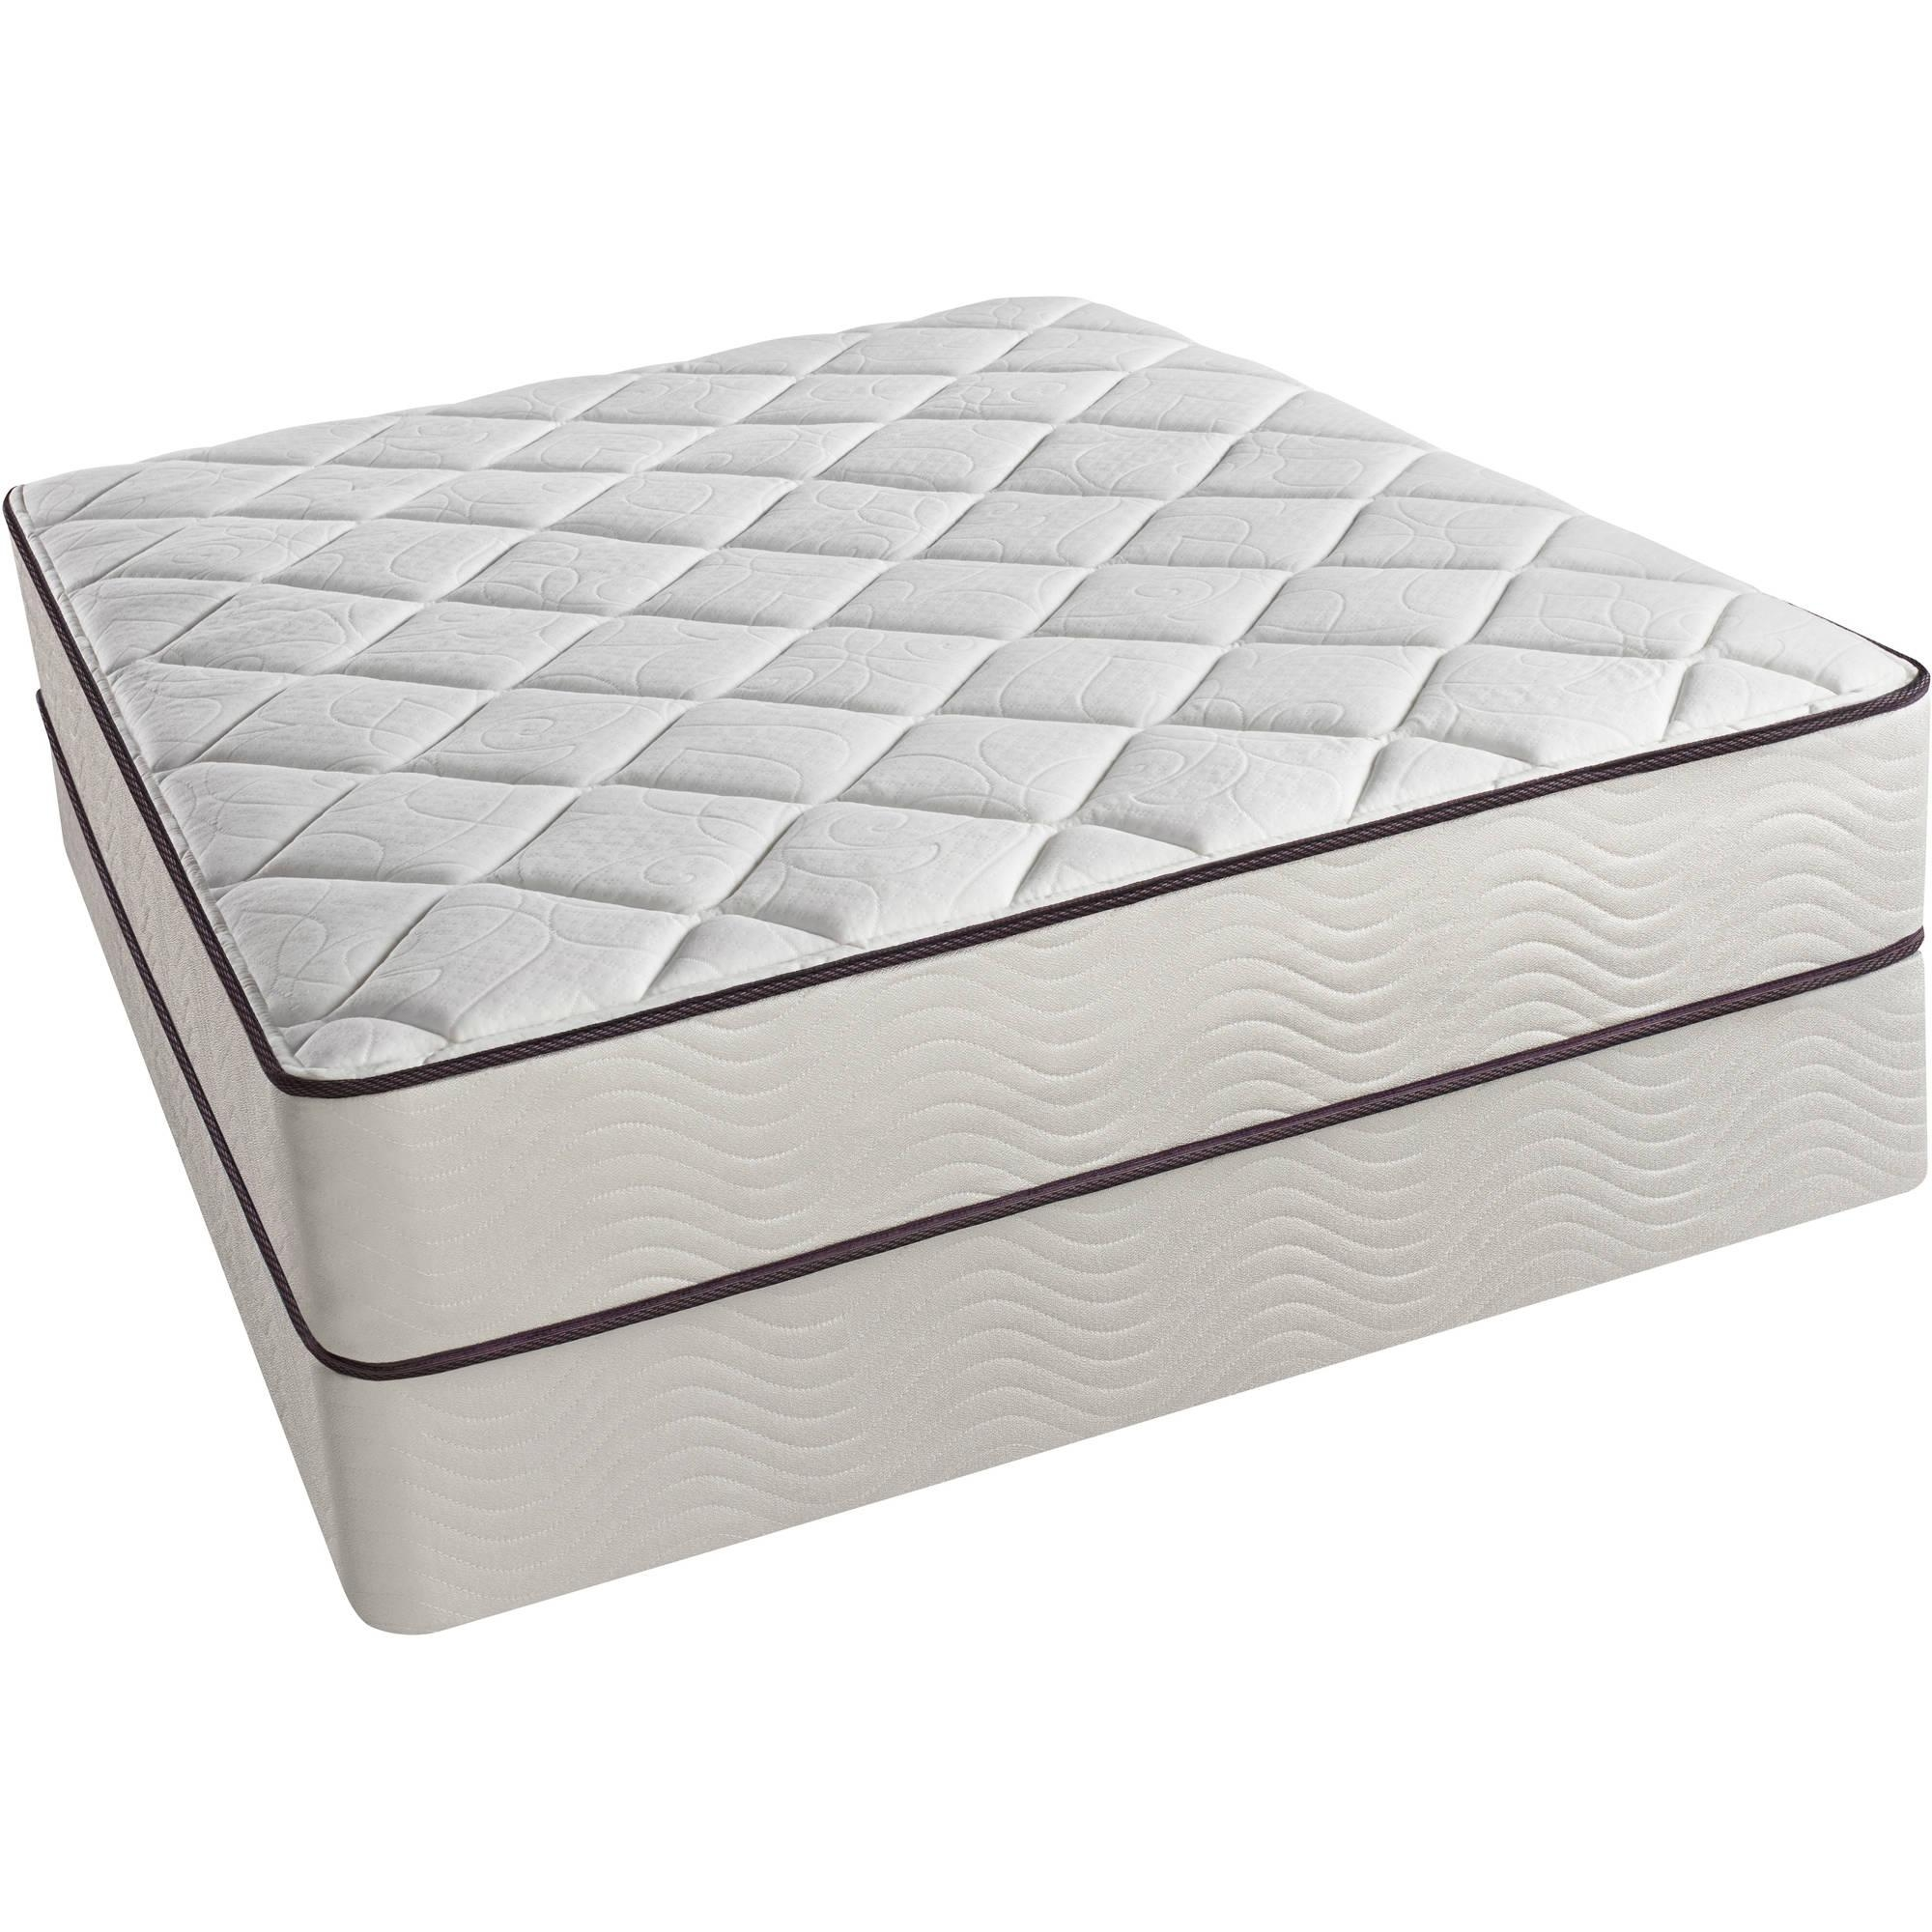 Mattresses : Twin Mattress Big Lots Cheap Queen Mattress Sets With Queen Mattress Sets (Image 13 of 20)